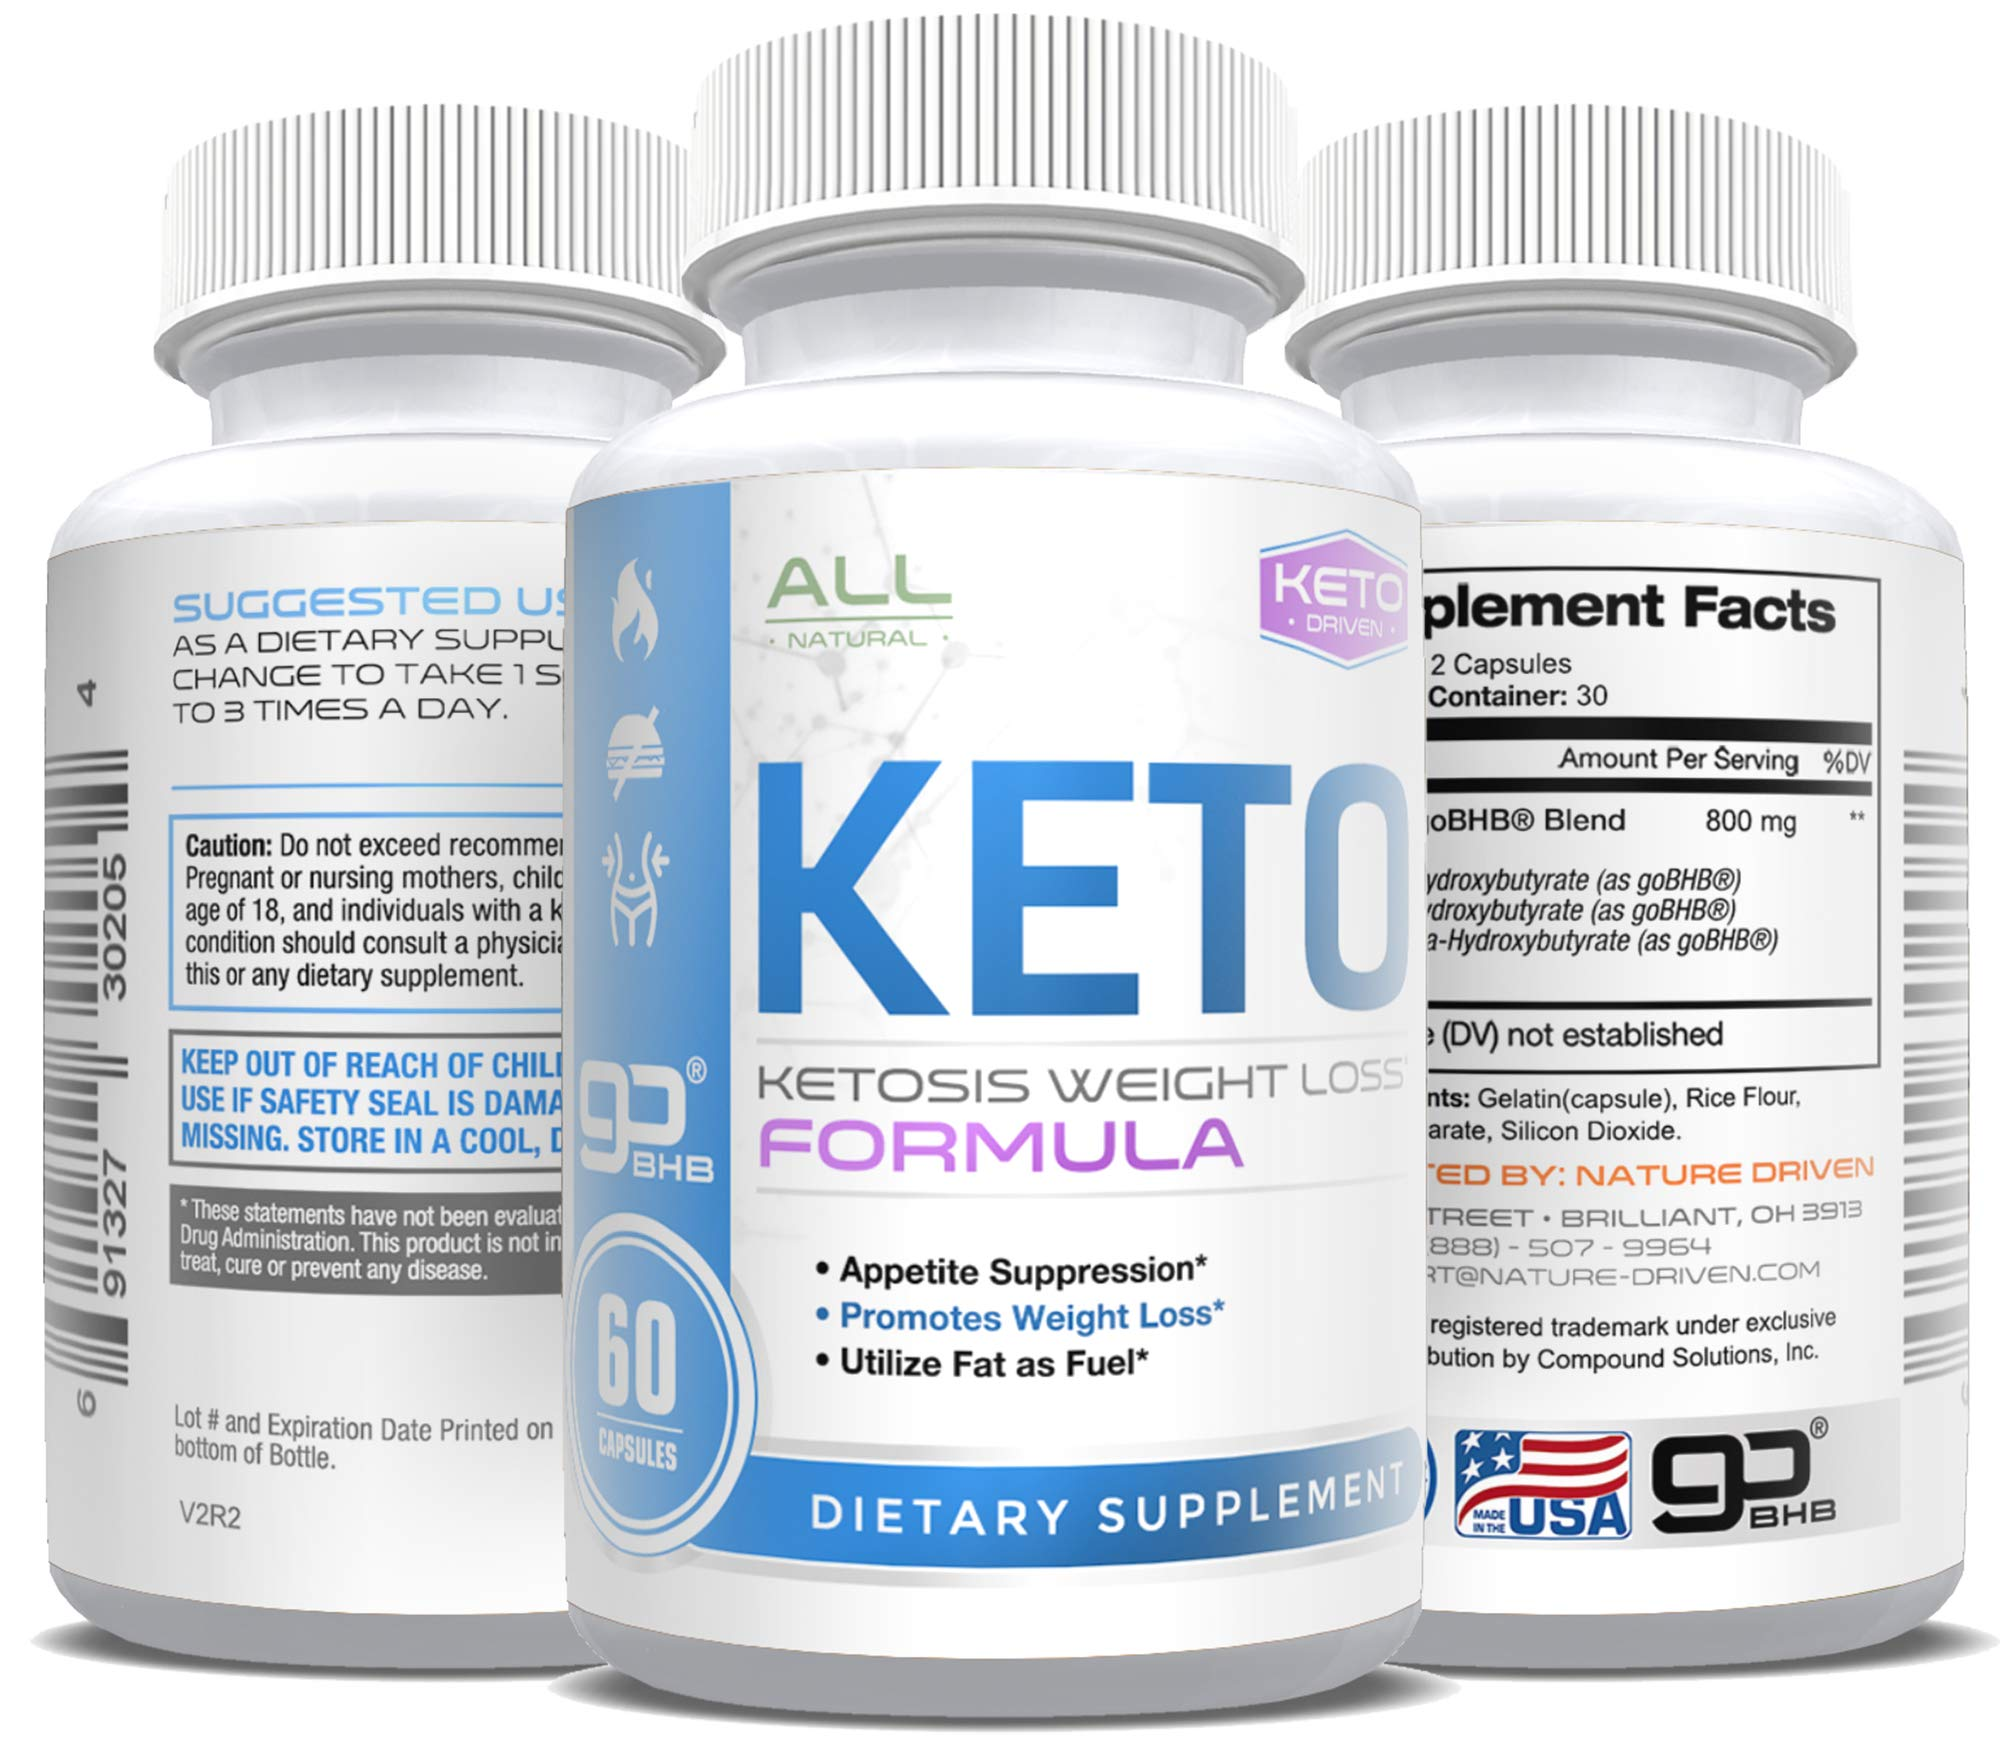 Keto Pills - Weight Loss for Men and Women - goBHB Formula - Ketosis Fat Burn - BHB Salts - Boost Energy - Burn Fat Fast - Reach Ketosis Fast - Appetite Suppressant - 30 Day Supply by Nature Driven